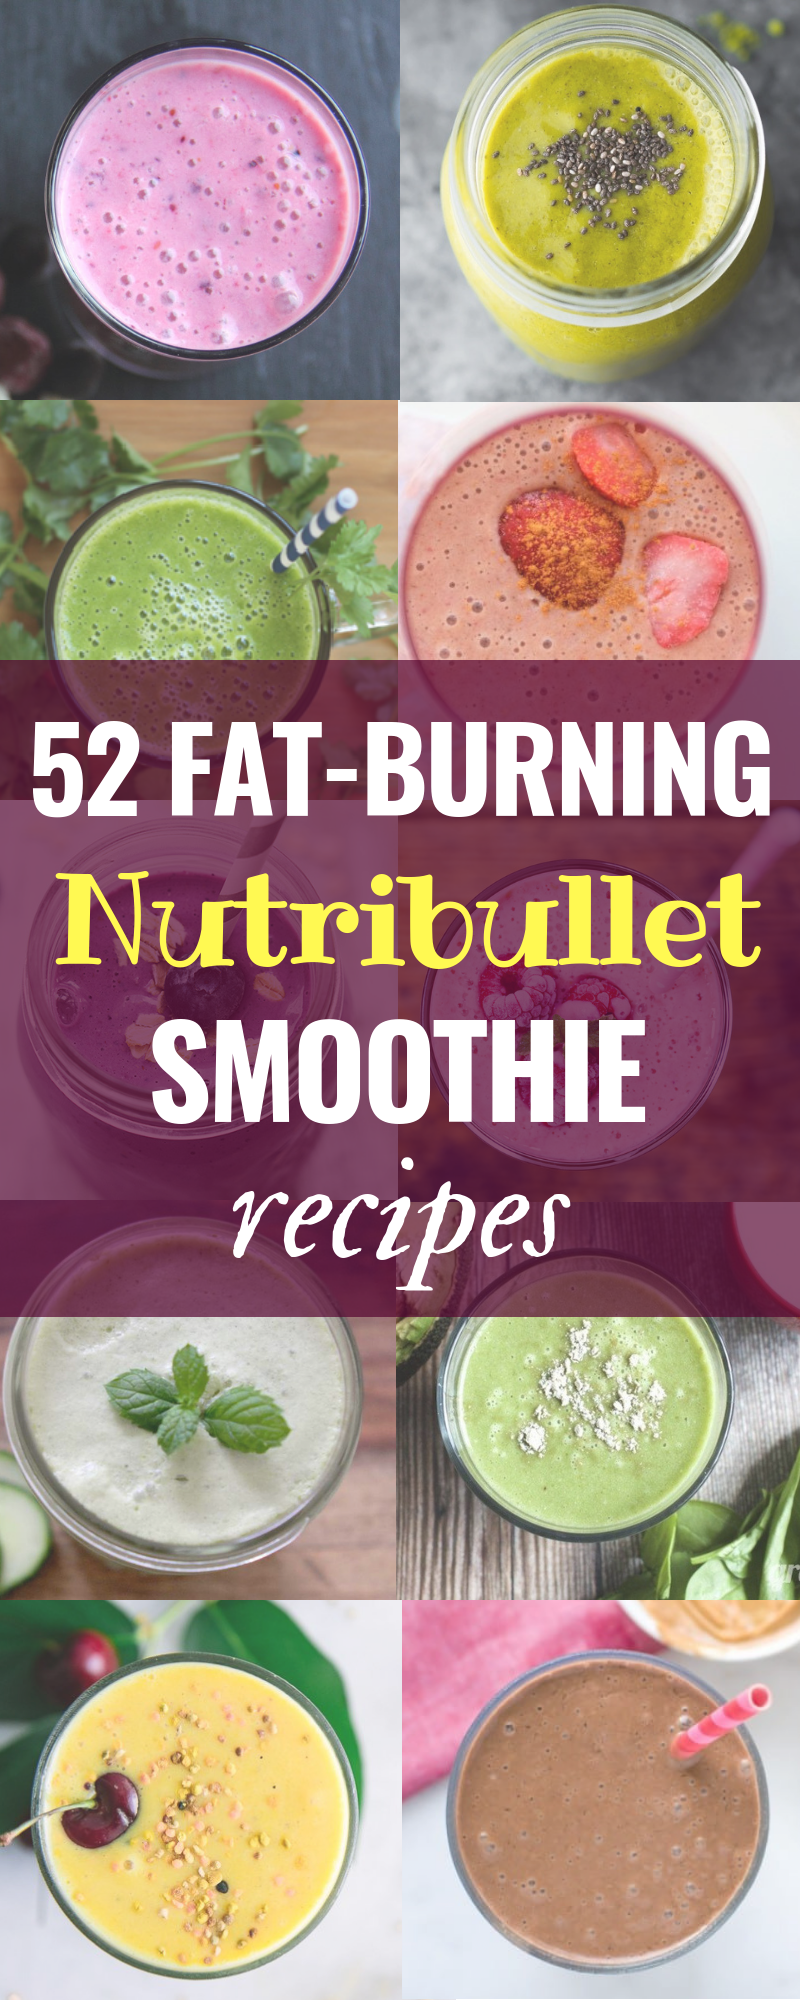 52 Magical Weight Loss Smoothie Recipes for your Nutribullet